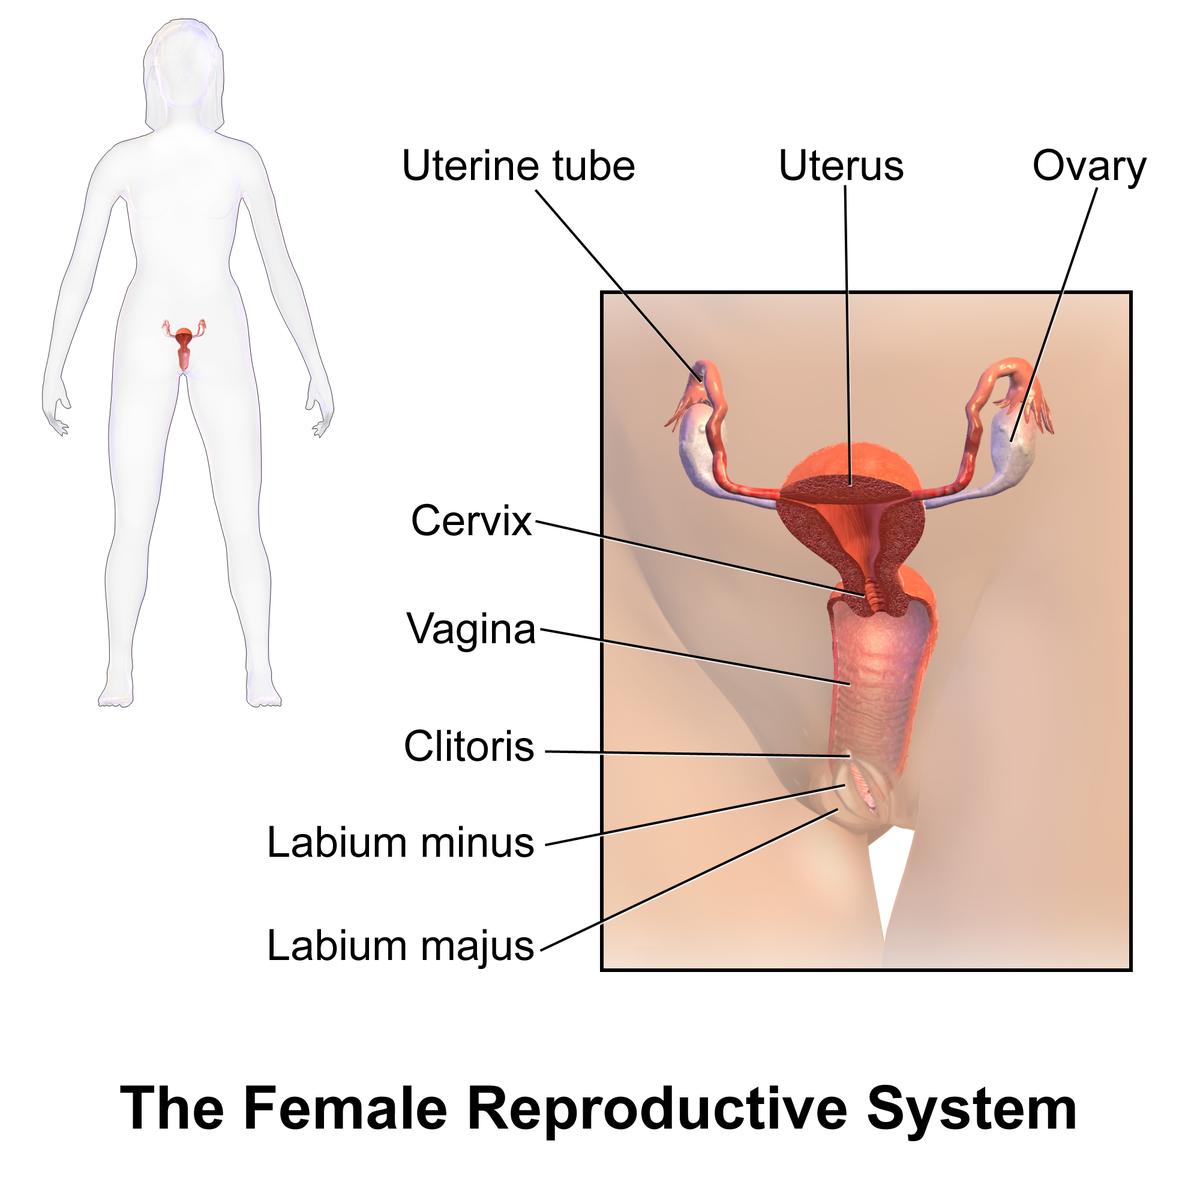 Images of the female sex organ